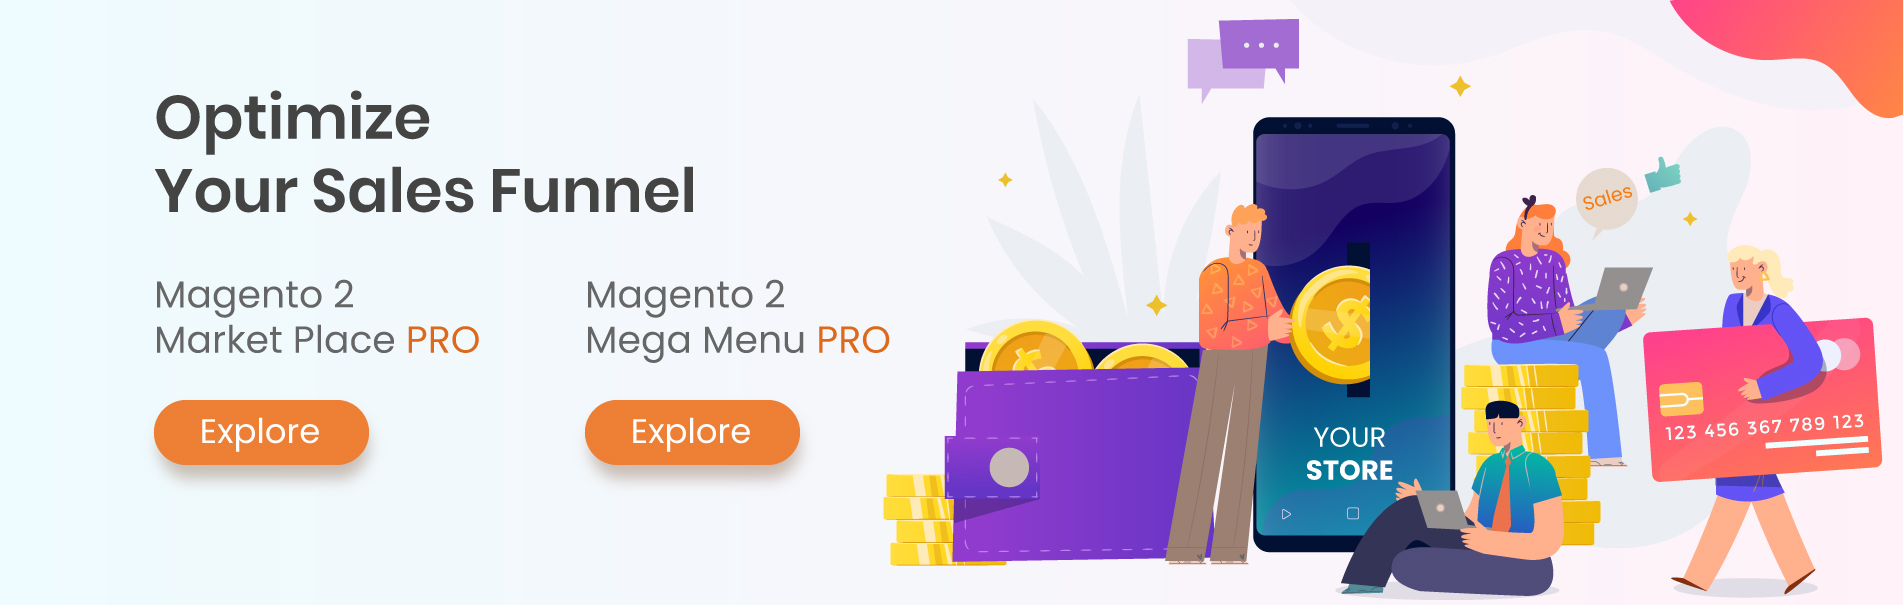 Magento 2 Reward Points, Affiliate, FAQ, Magento 2 Multivendor Marketplace